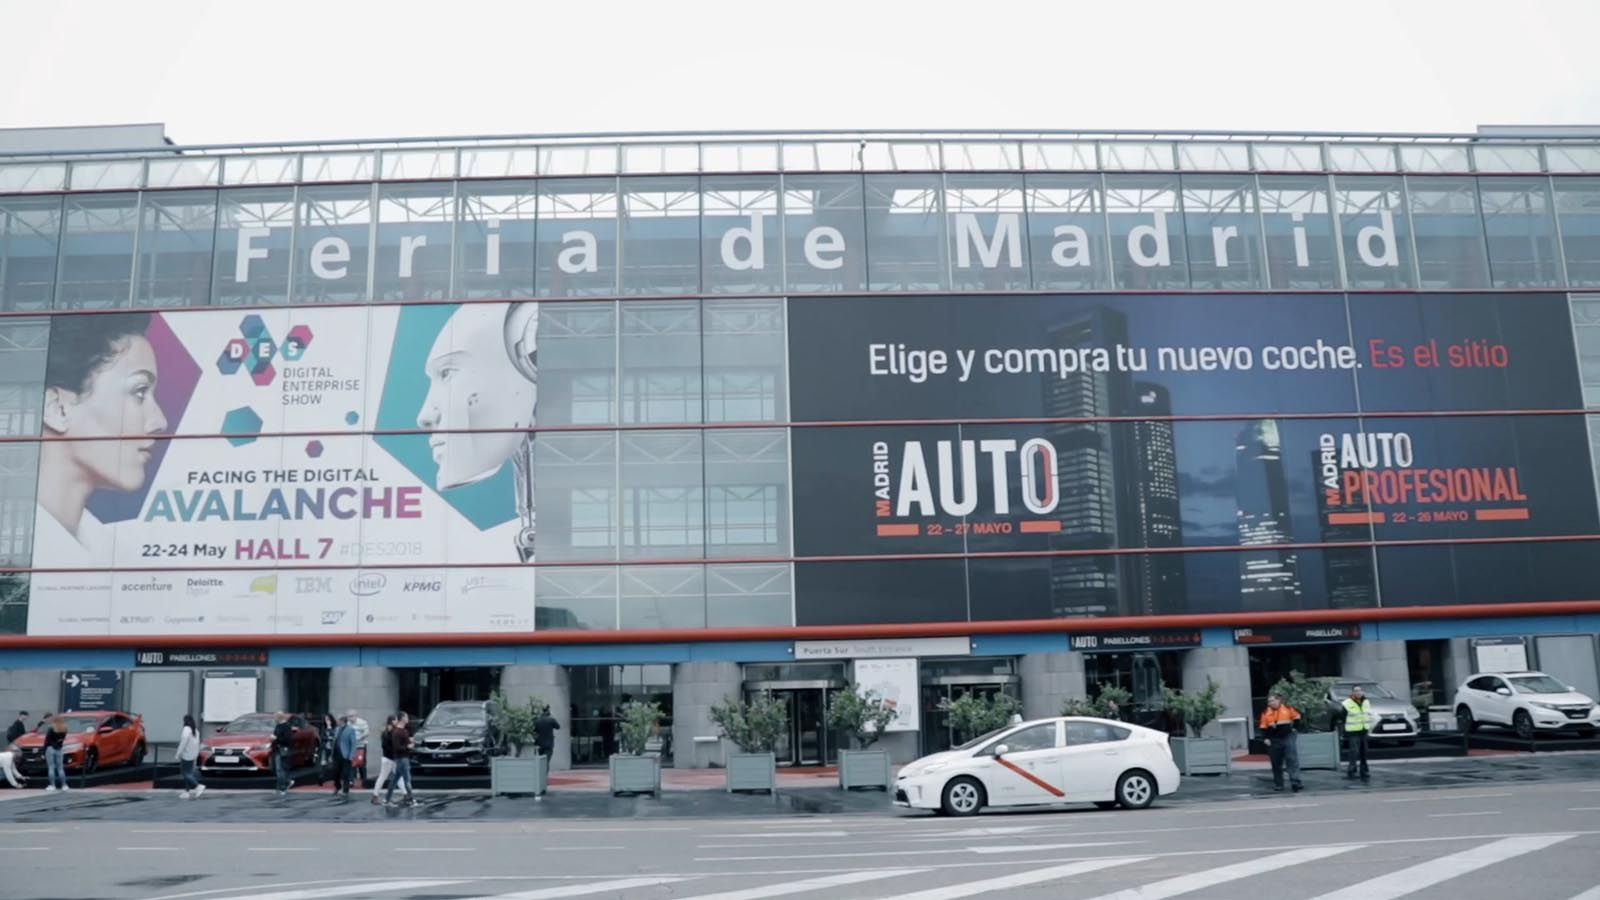 MADRID Auto 2018 - PUNTA TACON